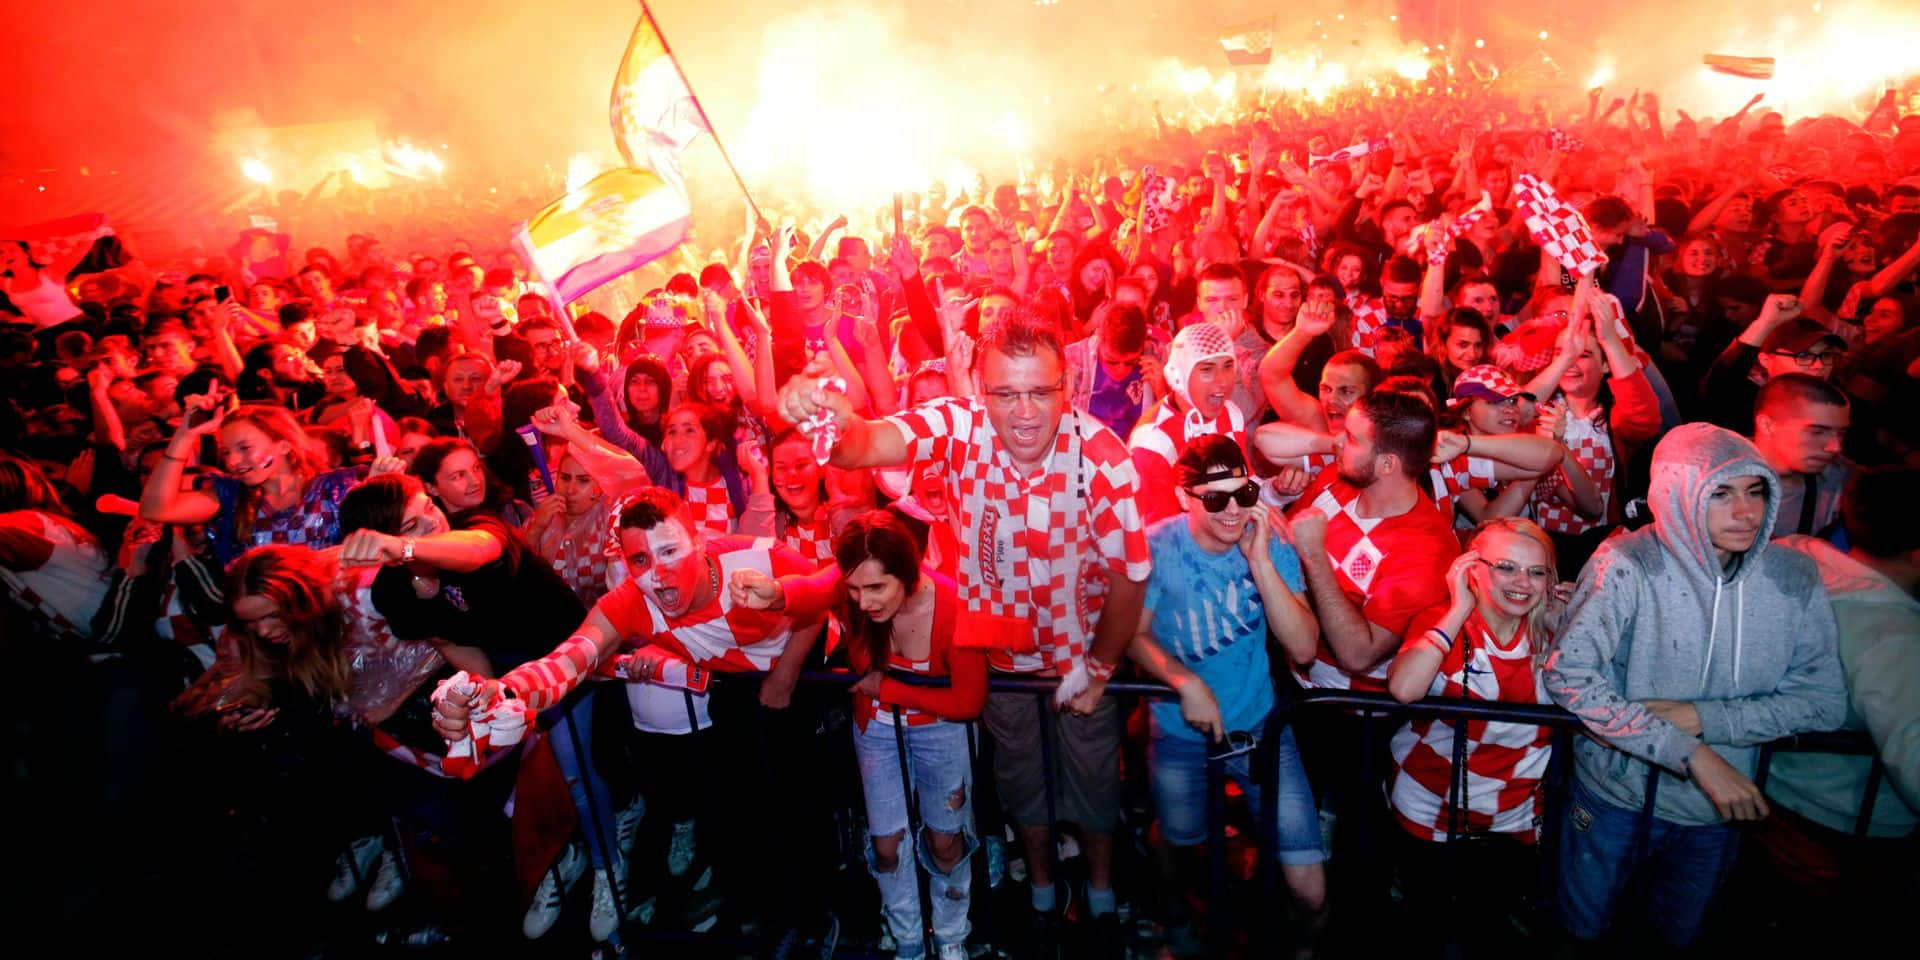 En Croatie, le football exacerbe la fierté nationale (ECLAIRAGE)